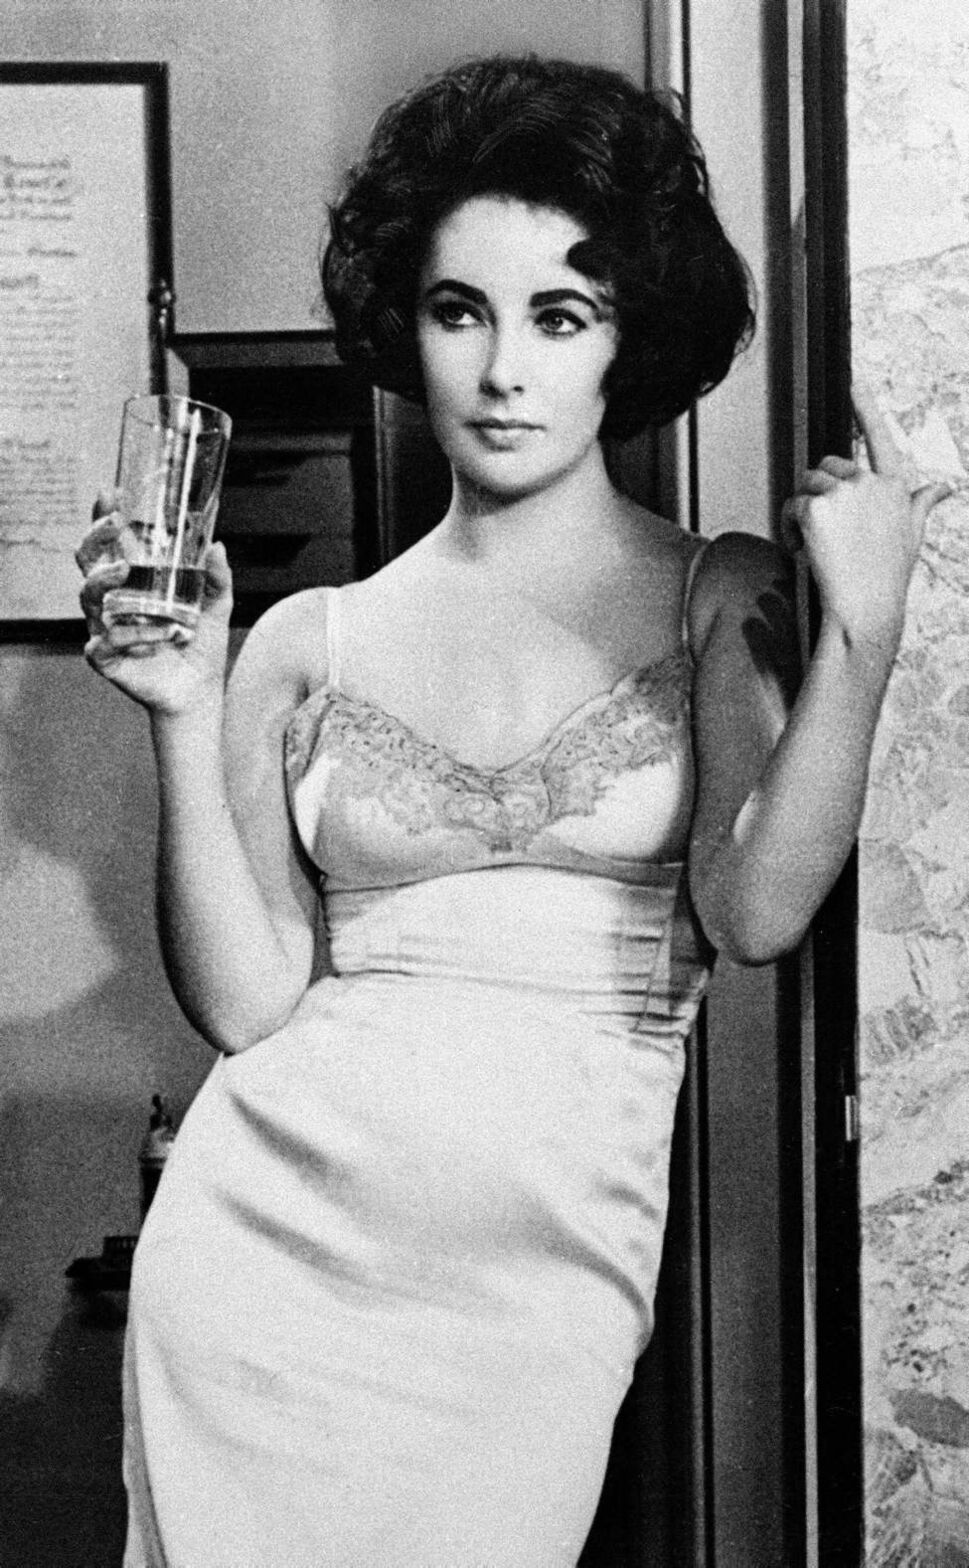 """This 1961 file photo shows actress Elizabeth Taylor in the film """"Butterfield 8"""" in 1961.  (AP Photo/File)"""